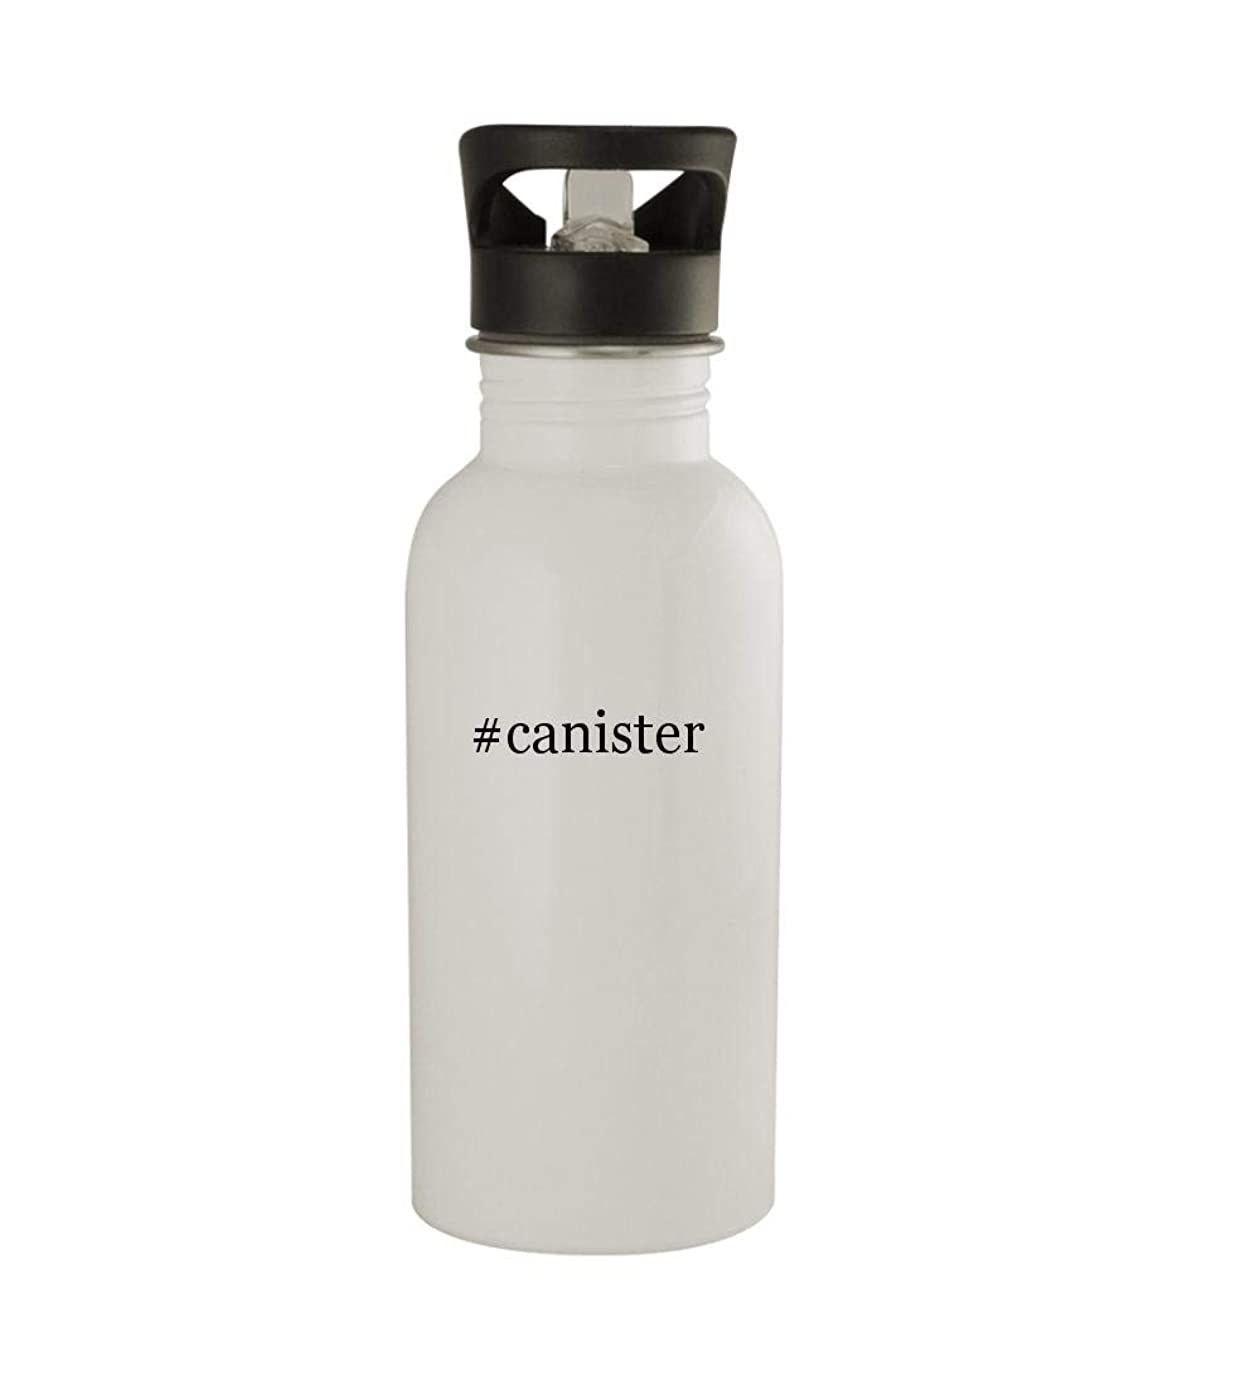 Knick Knack Gifts #Canister - 20oz Sturdy Hashtag Stainless Steel Water Bottle